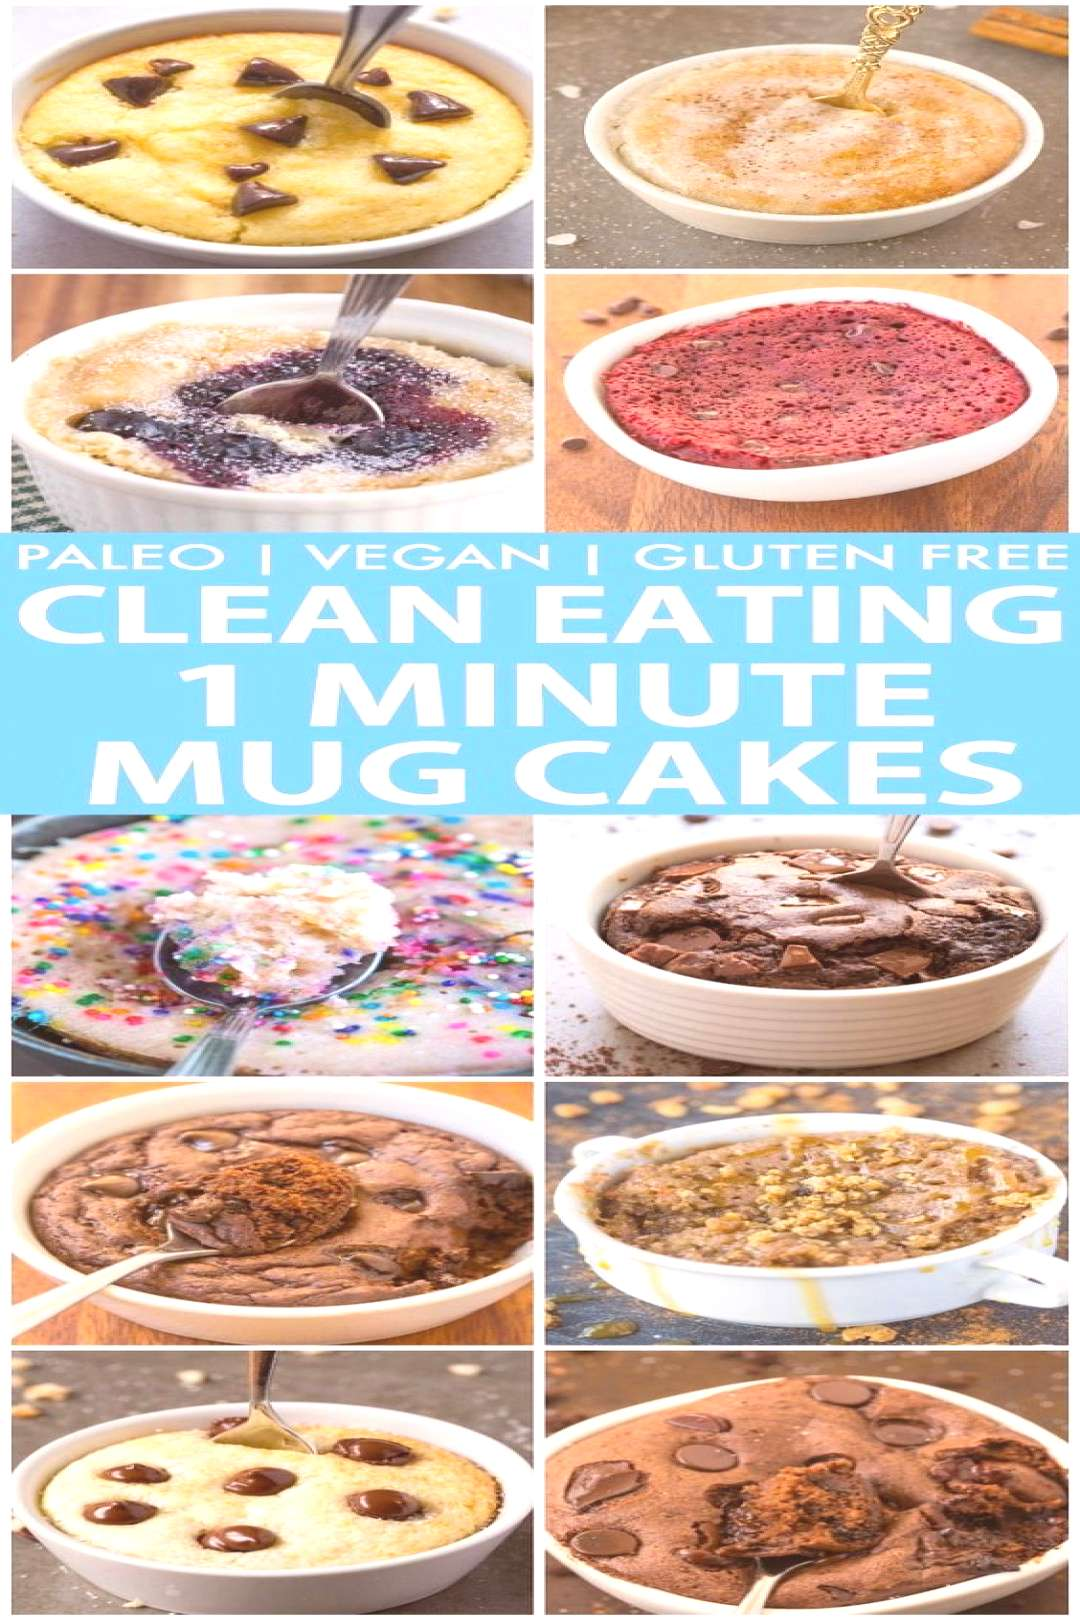 Clean Eating Healthy 1 Minute Mug Cakes, Brownies and Muffins (V, GF, Paleo)- Delicious, single-ser